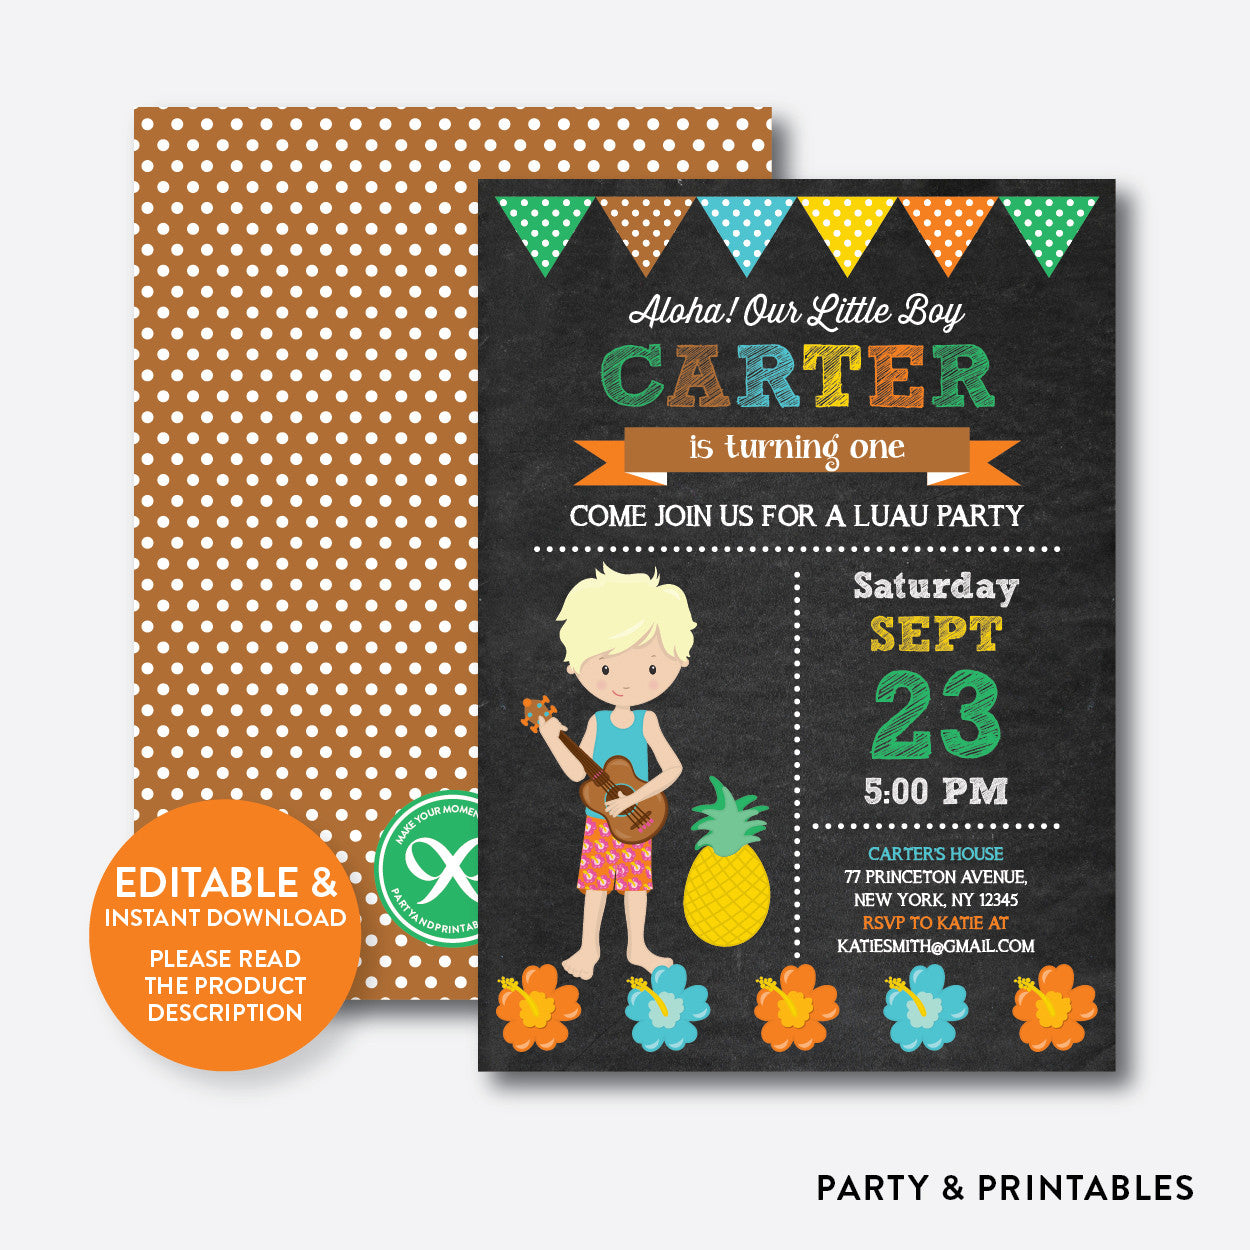 Luau Chalkboard Kids Birthday Invitation Editable Instant Download Party And Printables